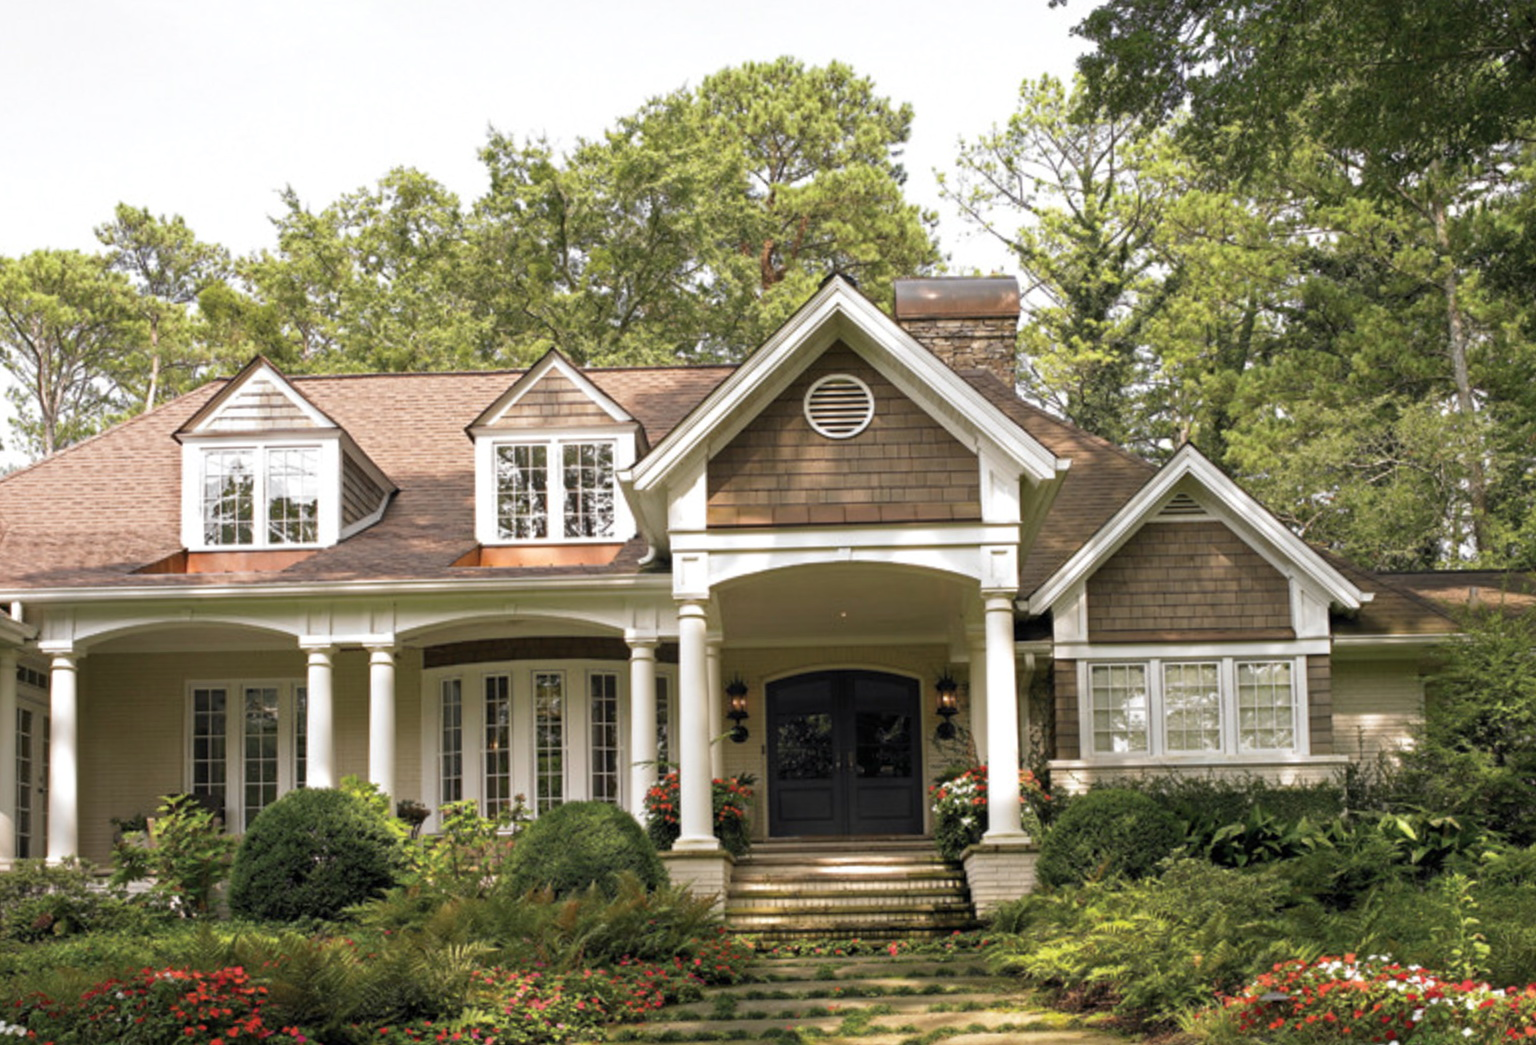 Add Front Porch To Ranch